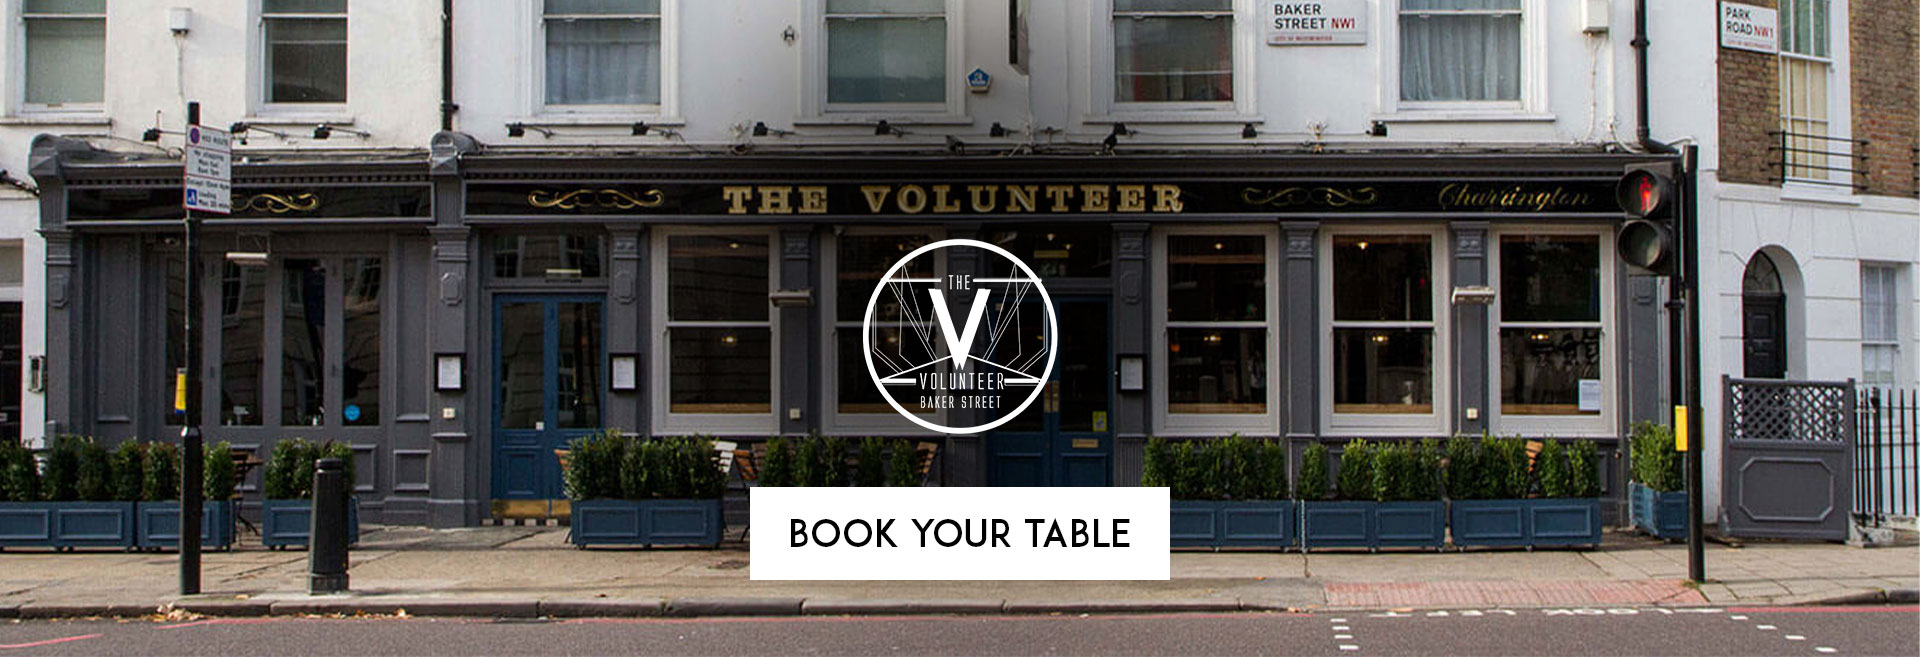 Book Your Table The Volunteer